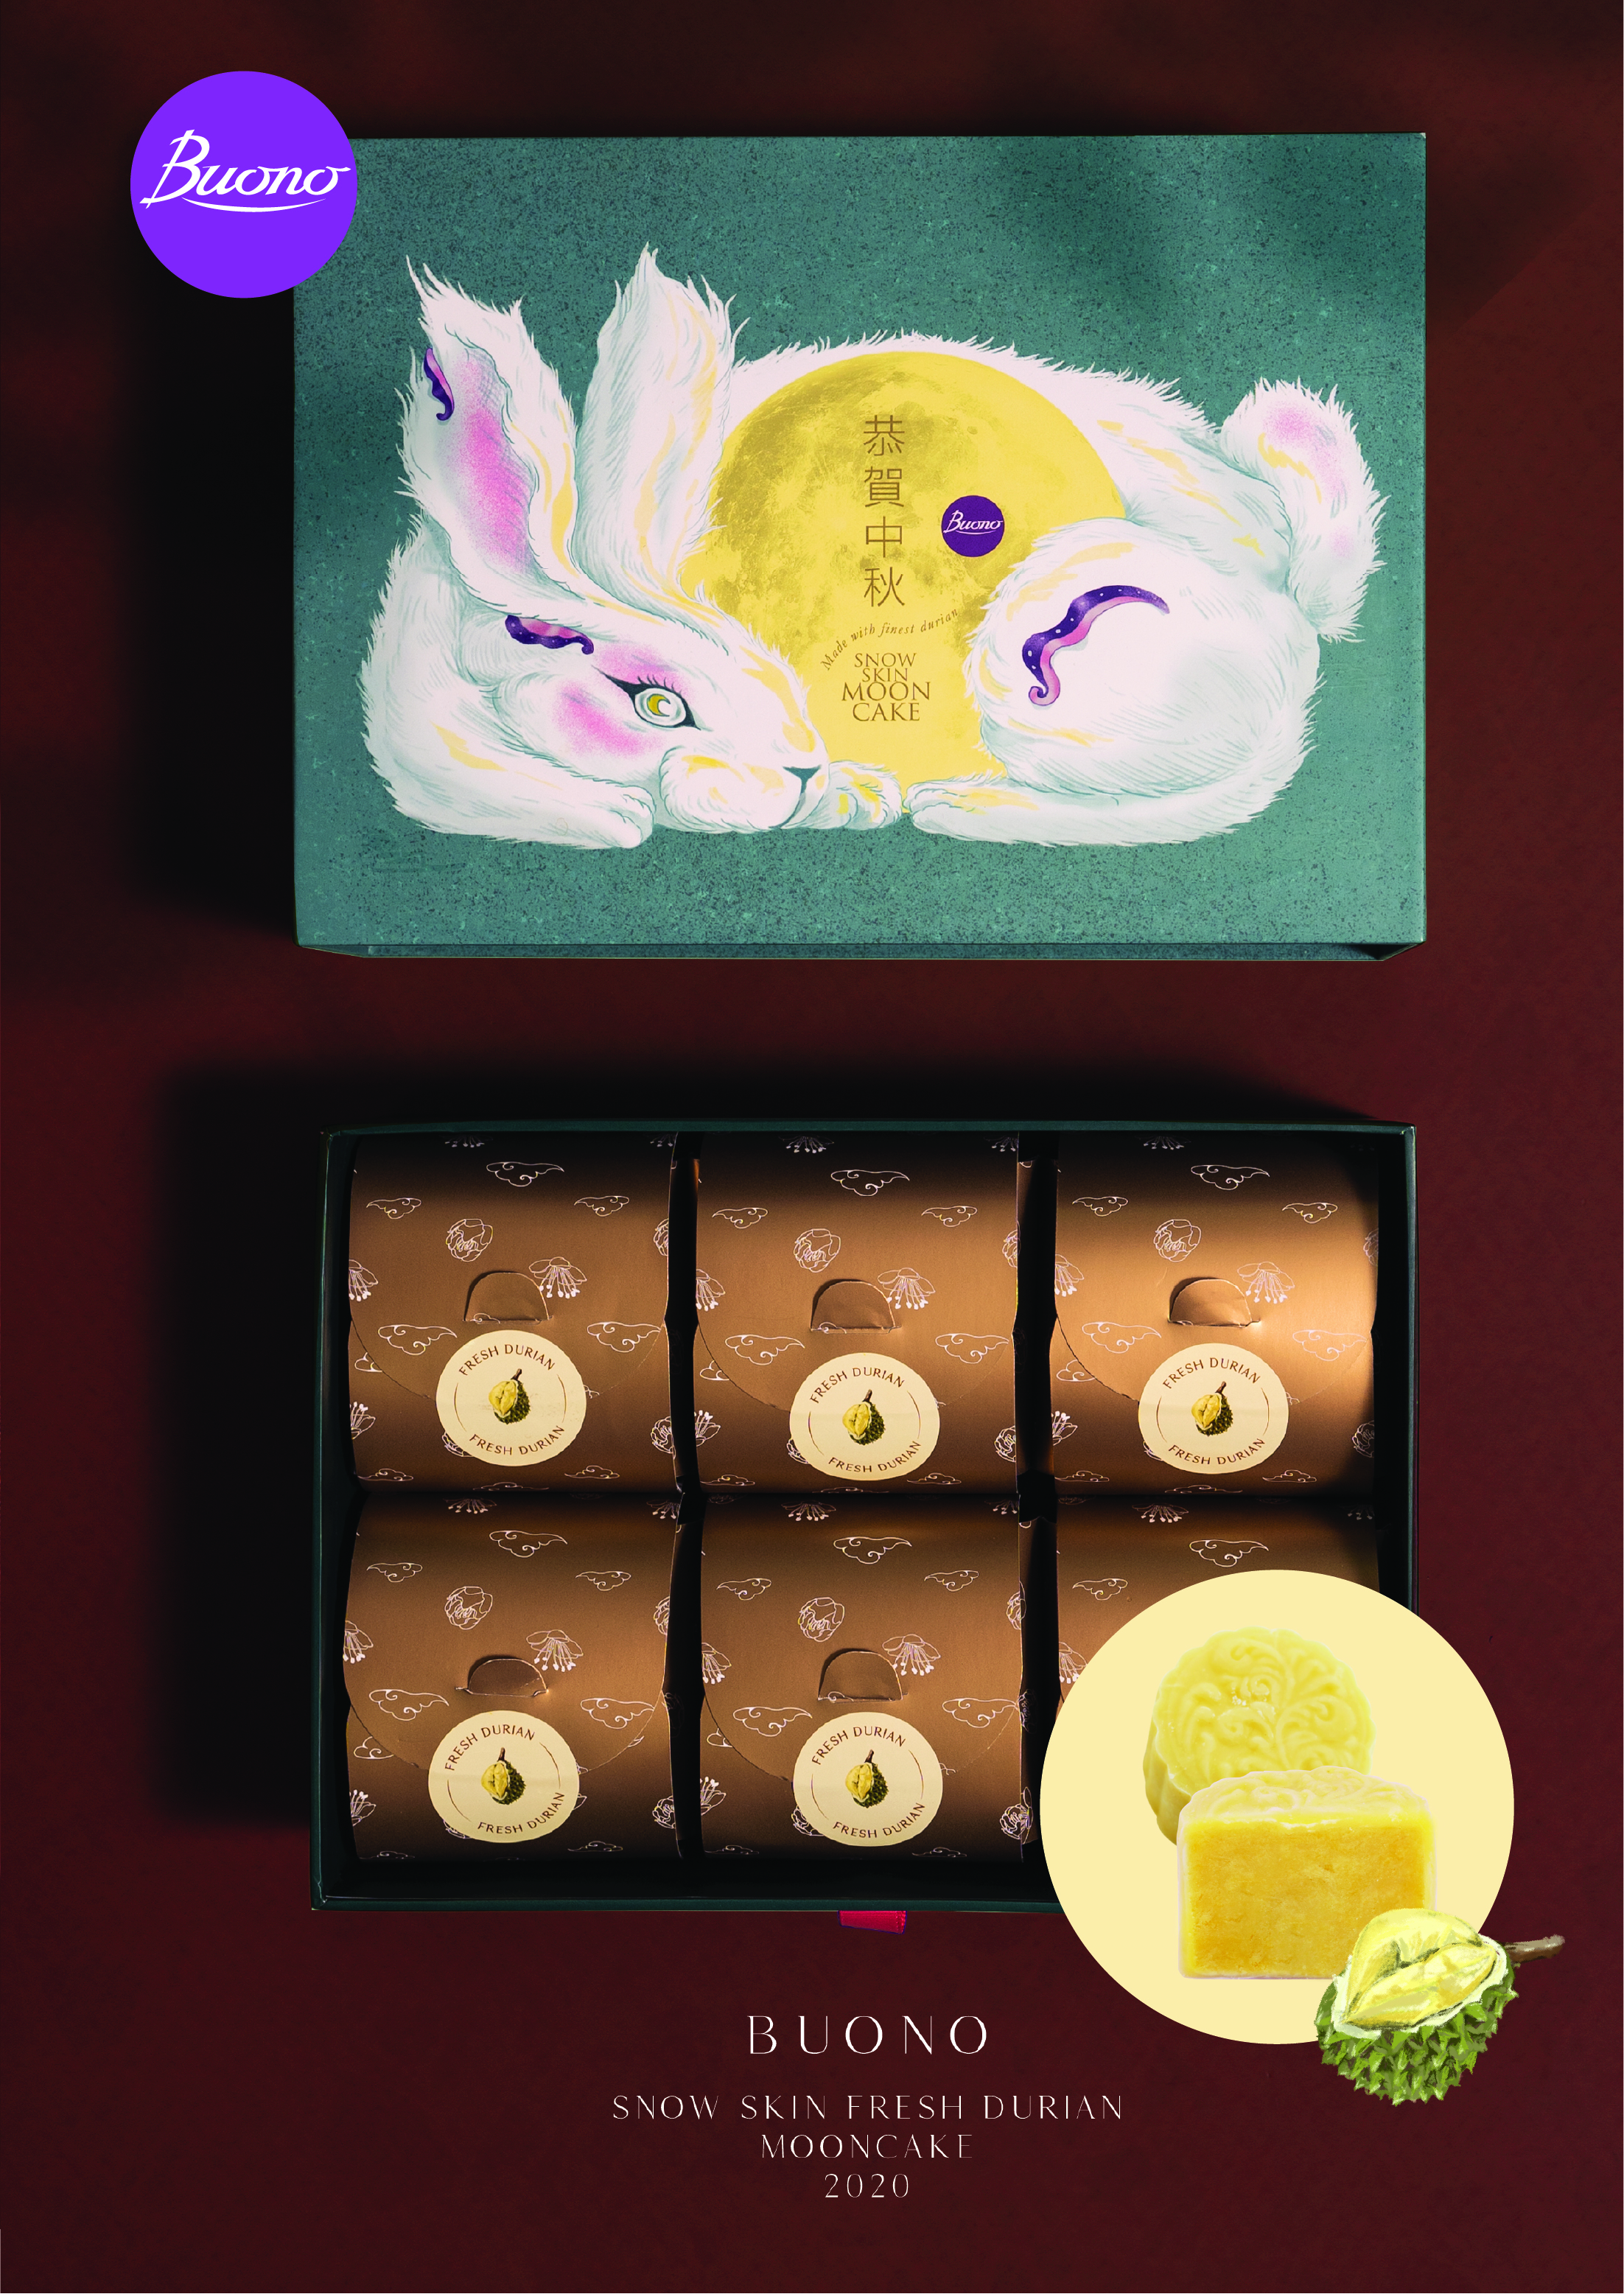 Buono Thailand Launches Buono Snow Skin Mooncake with 100% Thai Monthong Durian in Collaboration with Taiwanese Illustrator Jun-Jun for Mid-Autumn Festival